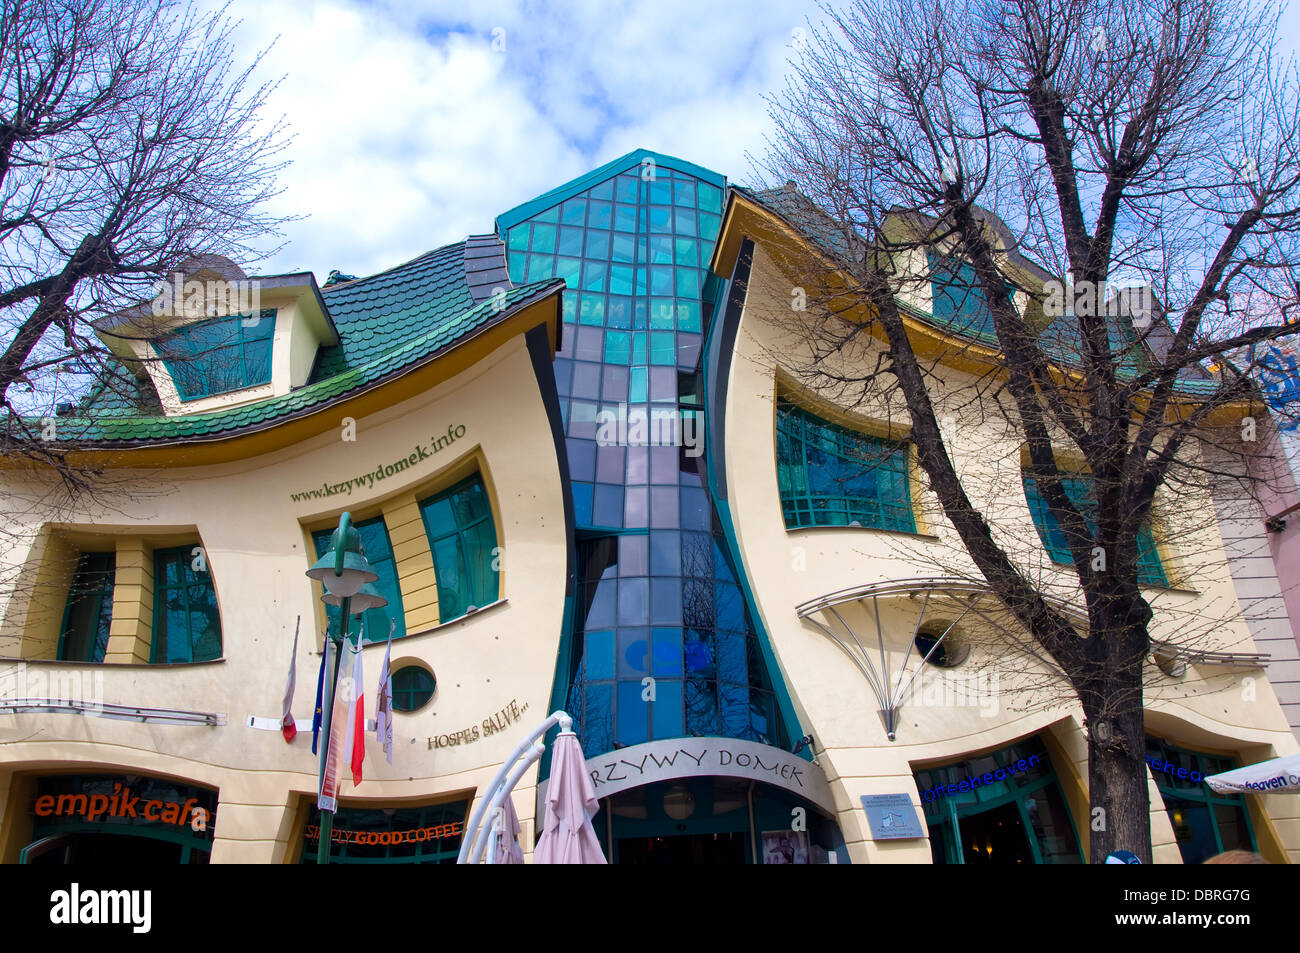 The Crooked House, Sopot, Poland - Stock Image